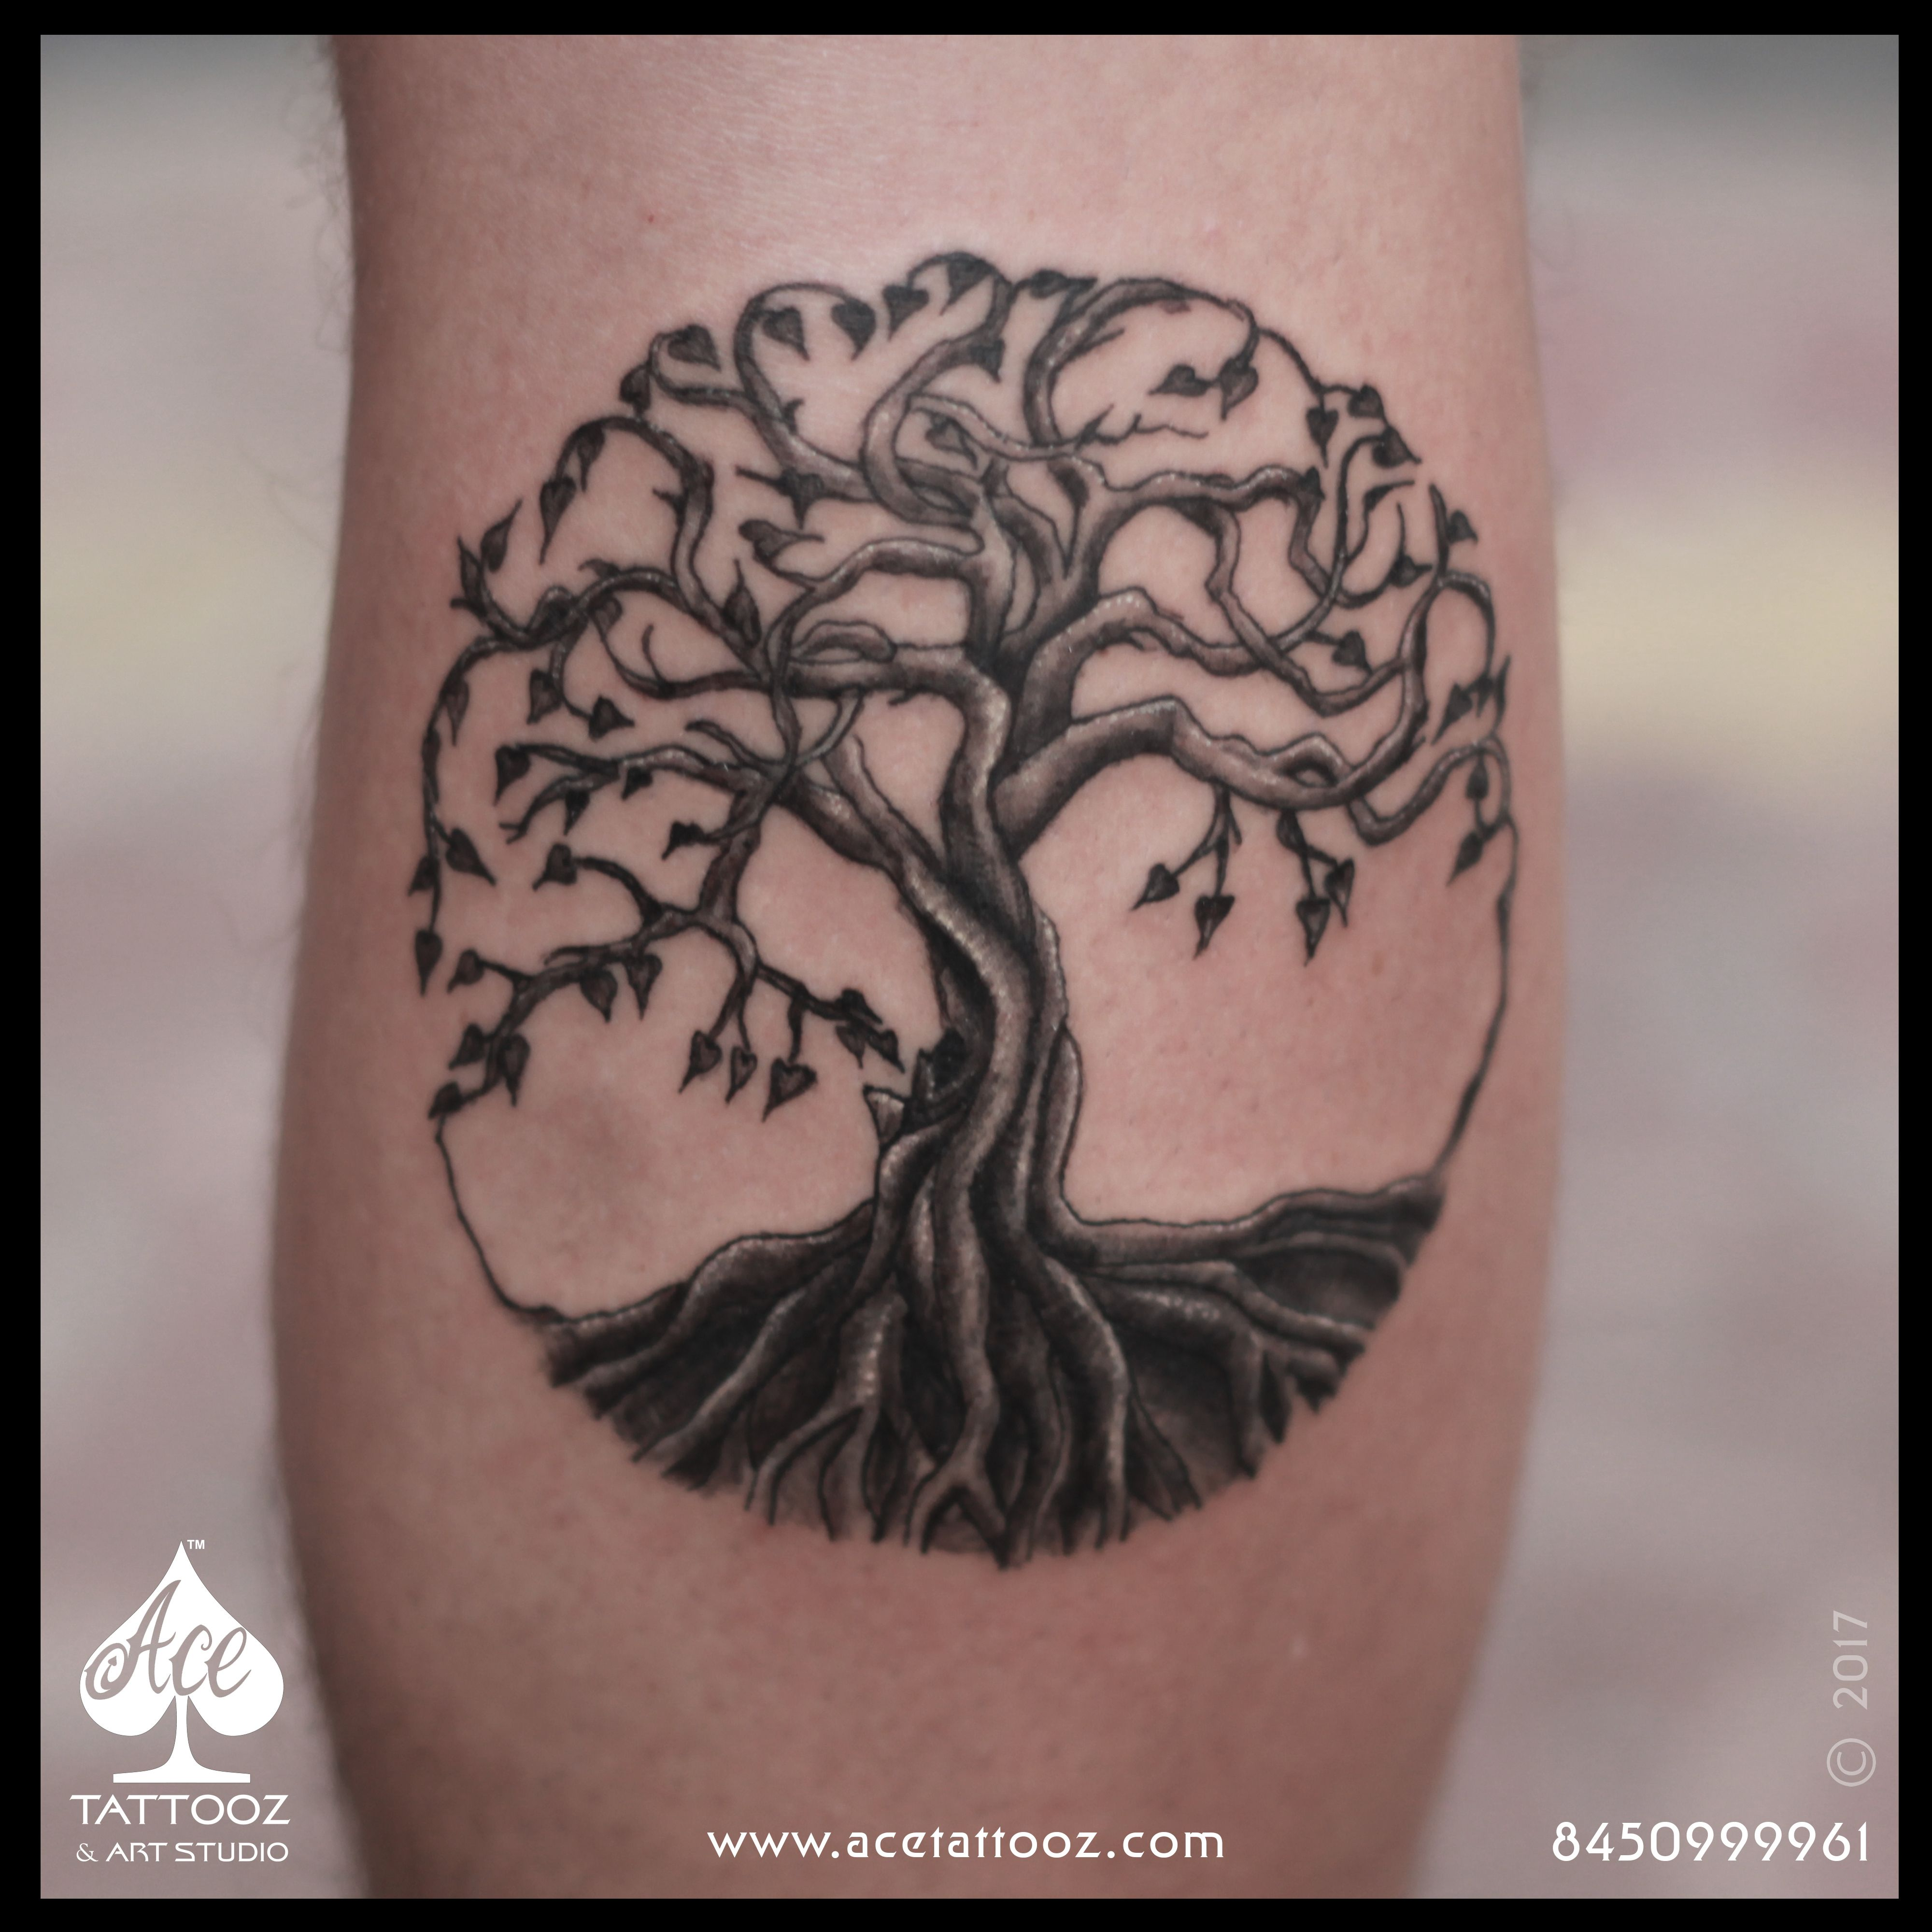 tattoos lifestyle Get the latest fashion and beauty trends, inspirations for home decor, horoscopes, celebrity style, parenting tips, relationship advice, advice for mindful living, and more.